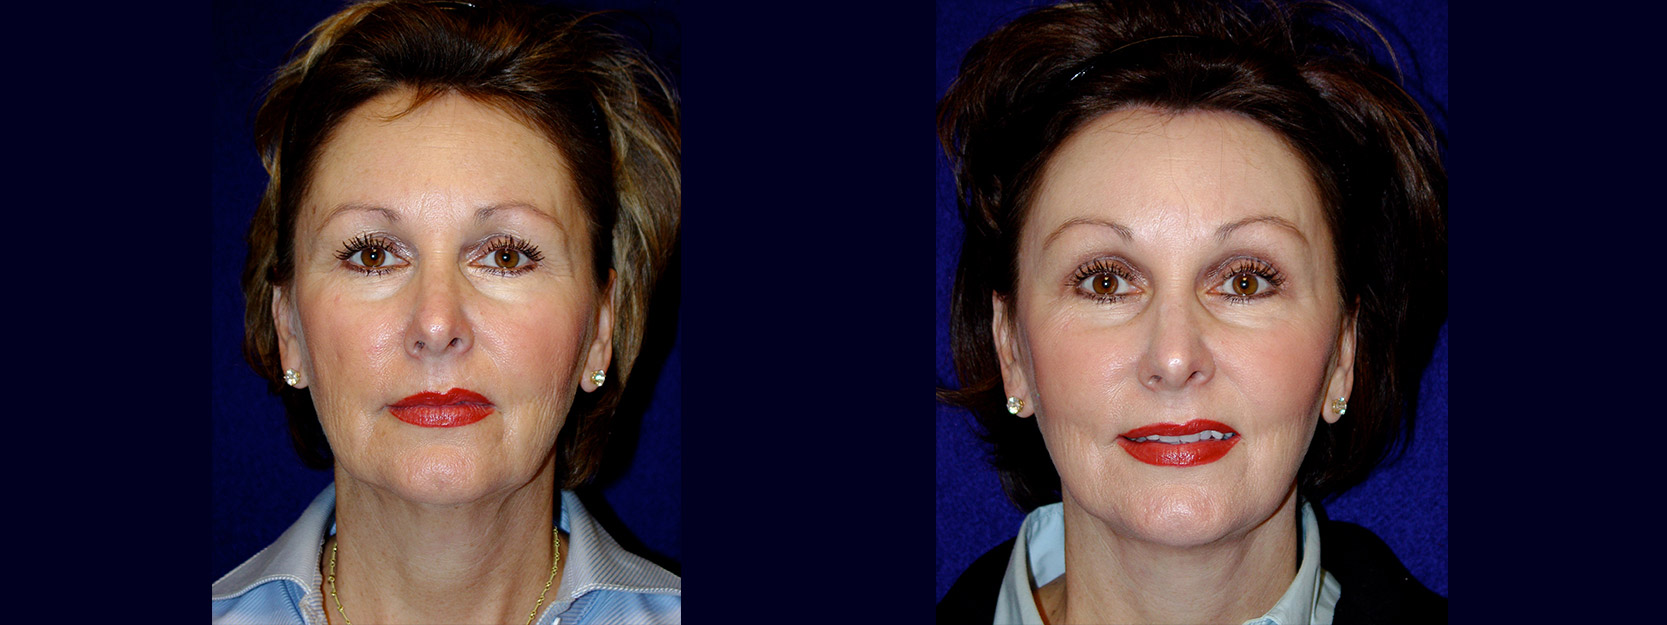 Full Frontal View - Facelift with Upper Eyelid Surgery and Browlift